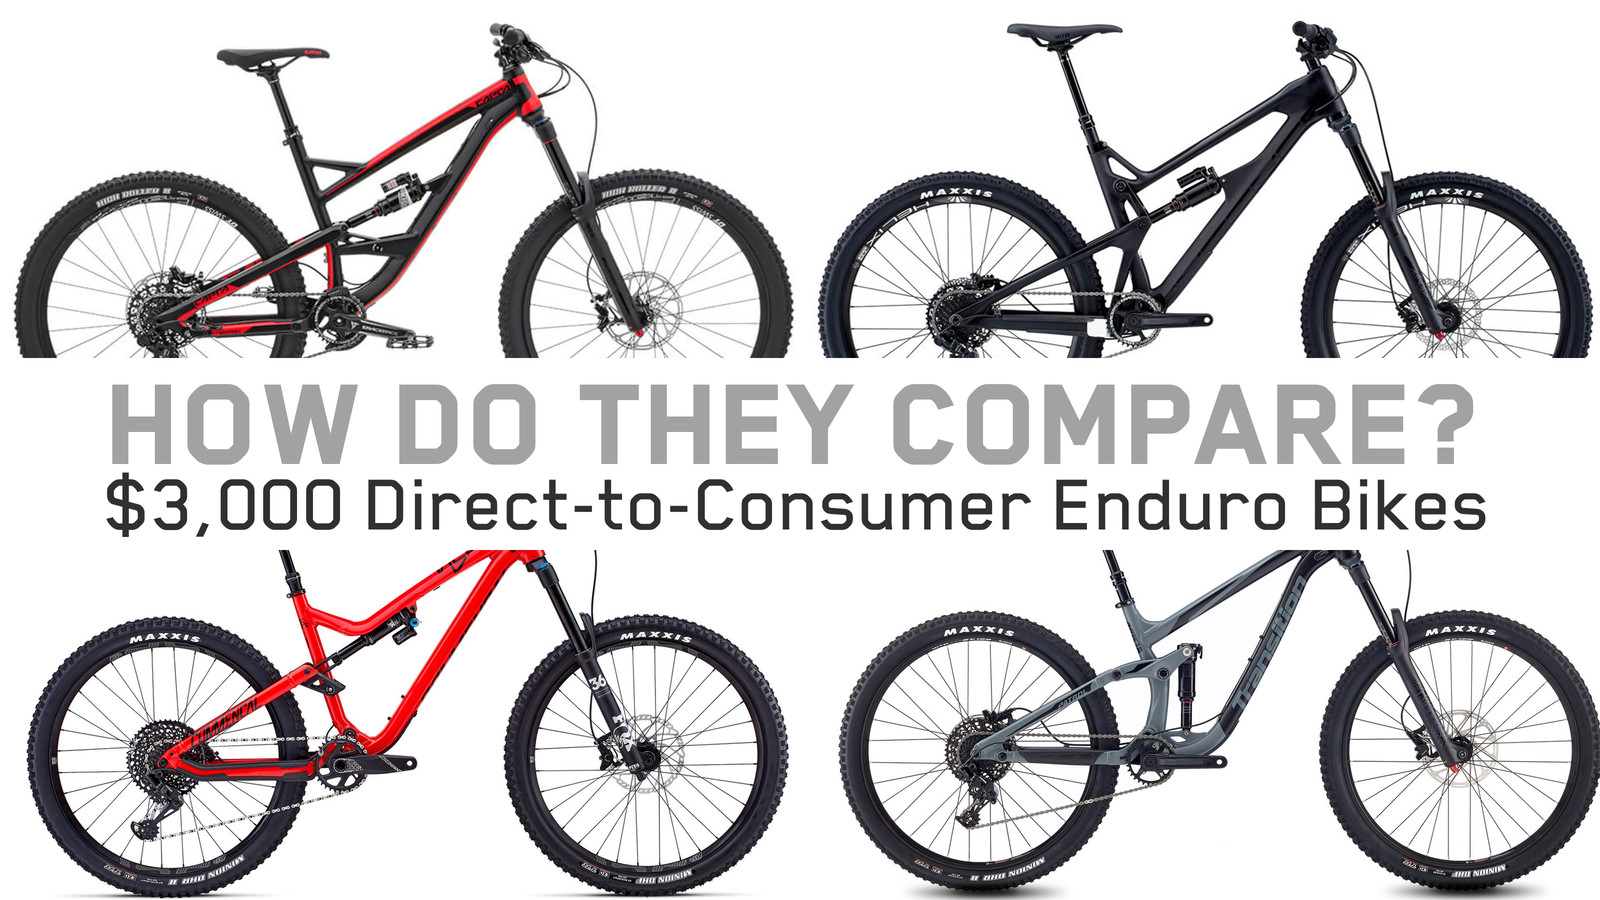 Budget Bike Comparison - Four $3,000 Direct-to-Consumer Enduro Bikes